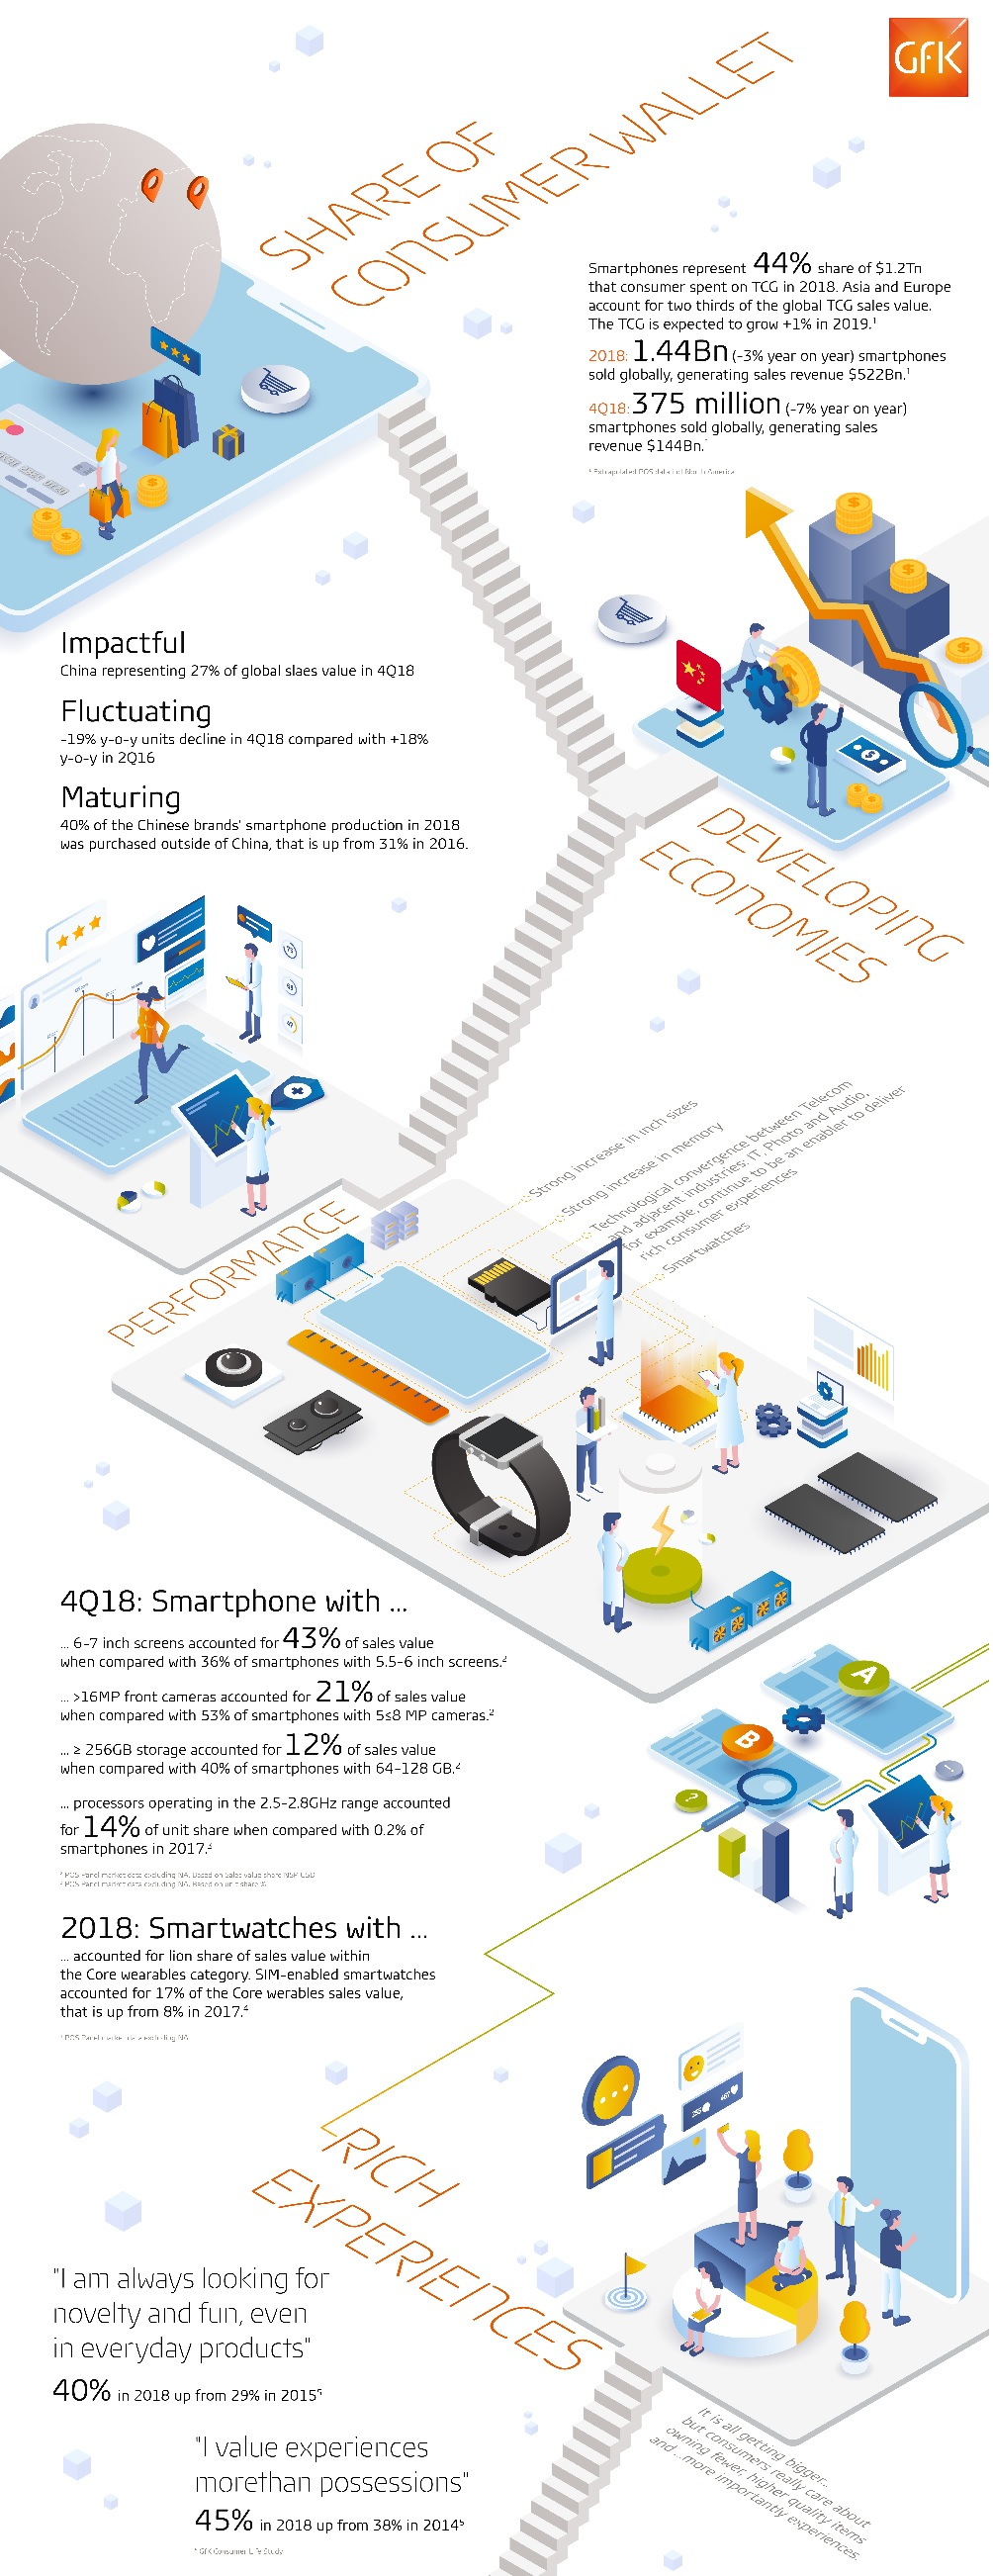 Gfk Pool King Gfk Smartphones Mobile Phones And Wearables Still The Powerhouse